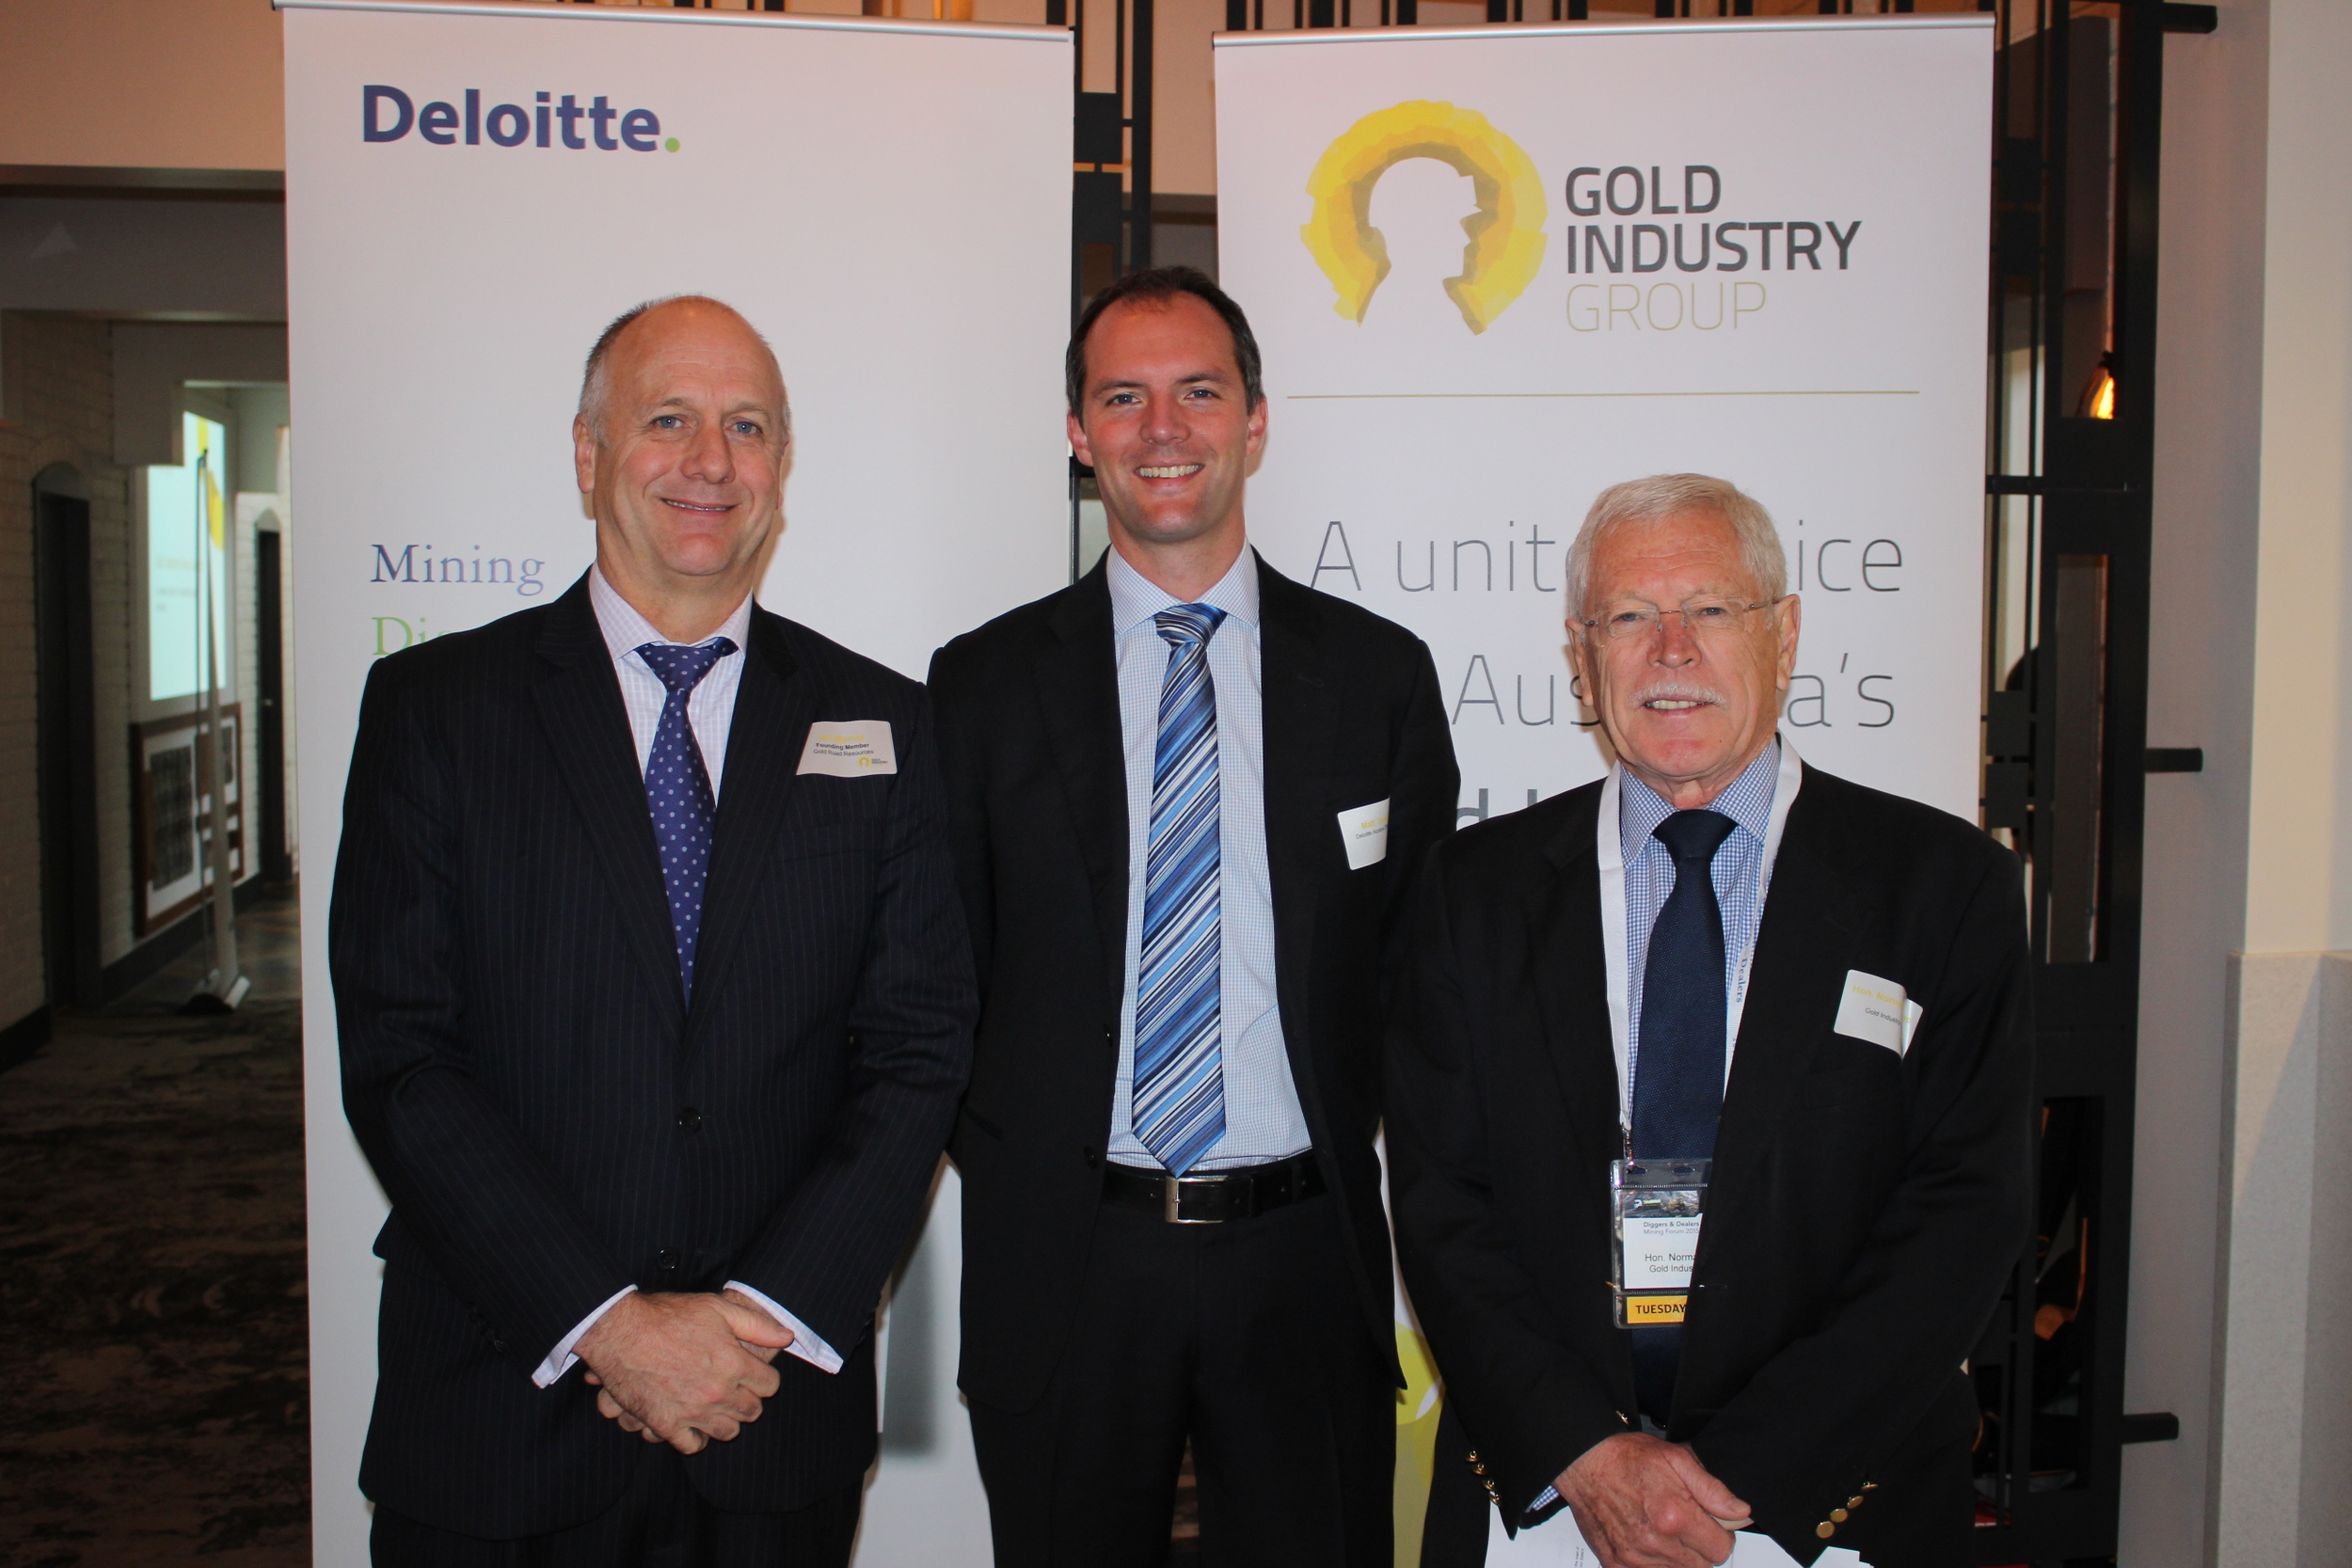 Gold Road Resources' Ian Murray, Deloitte Access Economics Matt Judkins and Chairman of the Gold Industry Group Norman Moore at the launch event which was held at Diggers & Dealers 2015 in Kalgoorlie-Boulder.